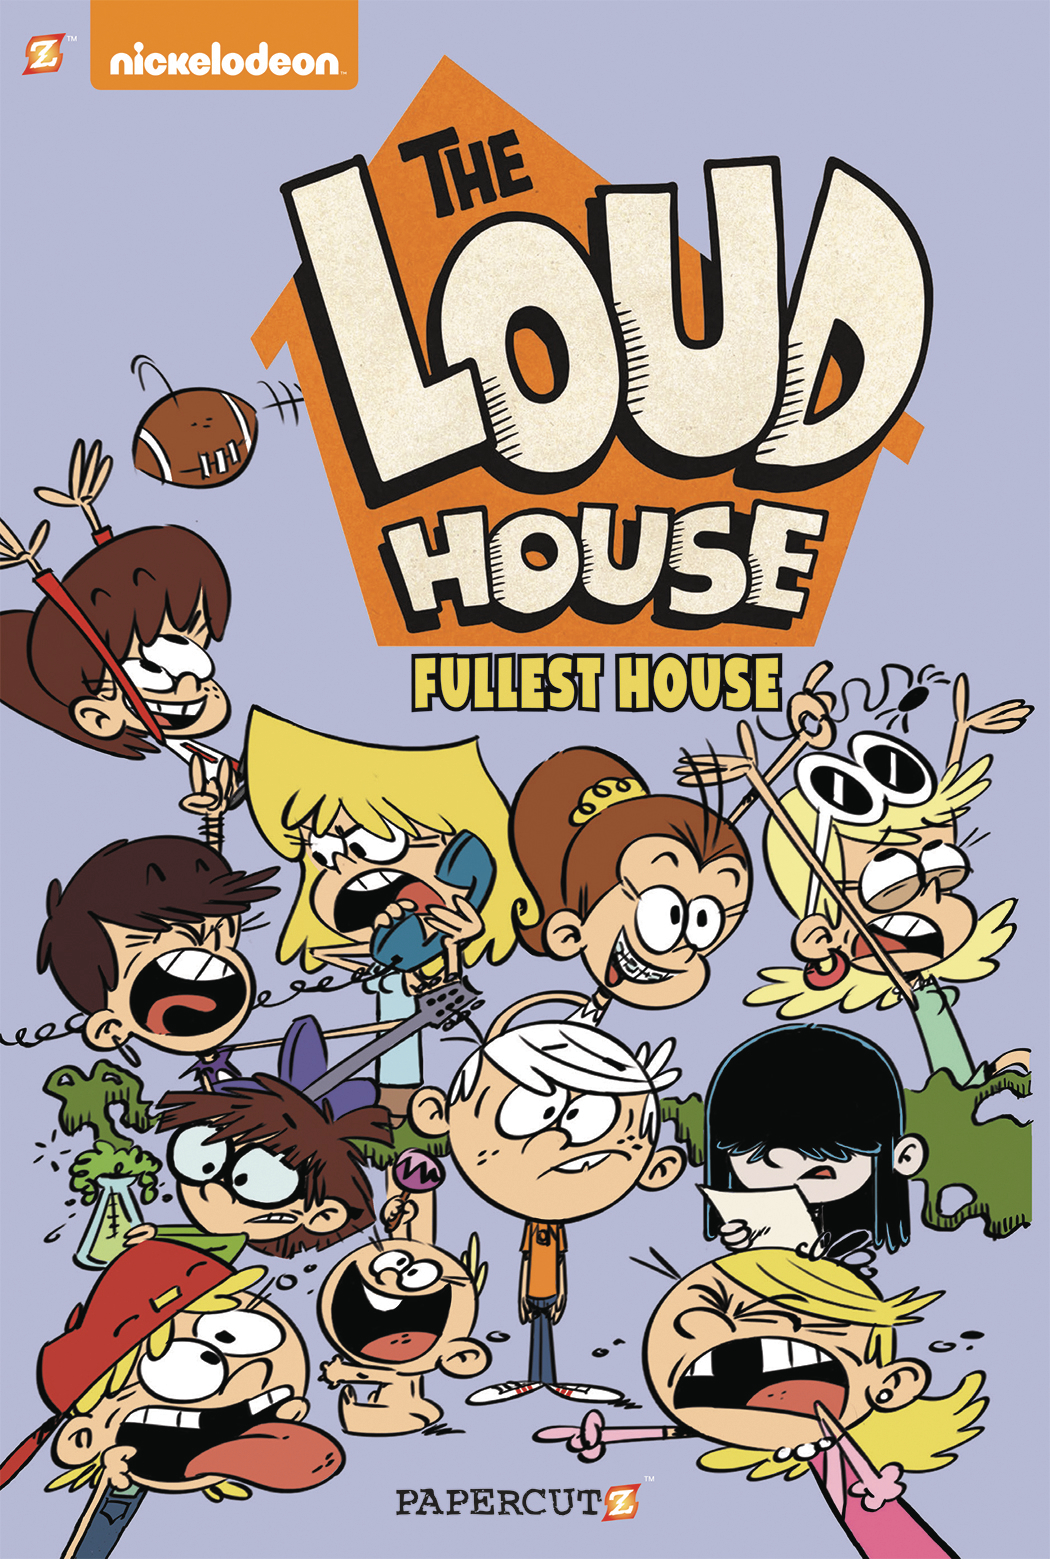 LOUD HOUSE GN VOL 01 THERE WILL BE CHAOS